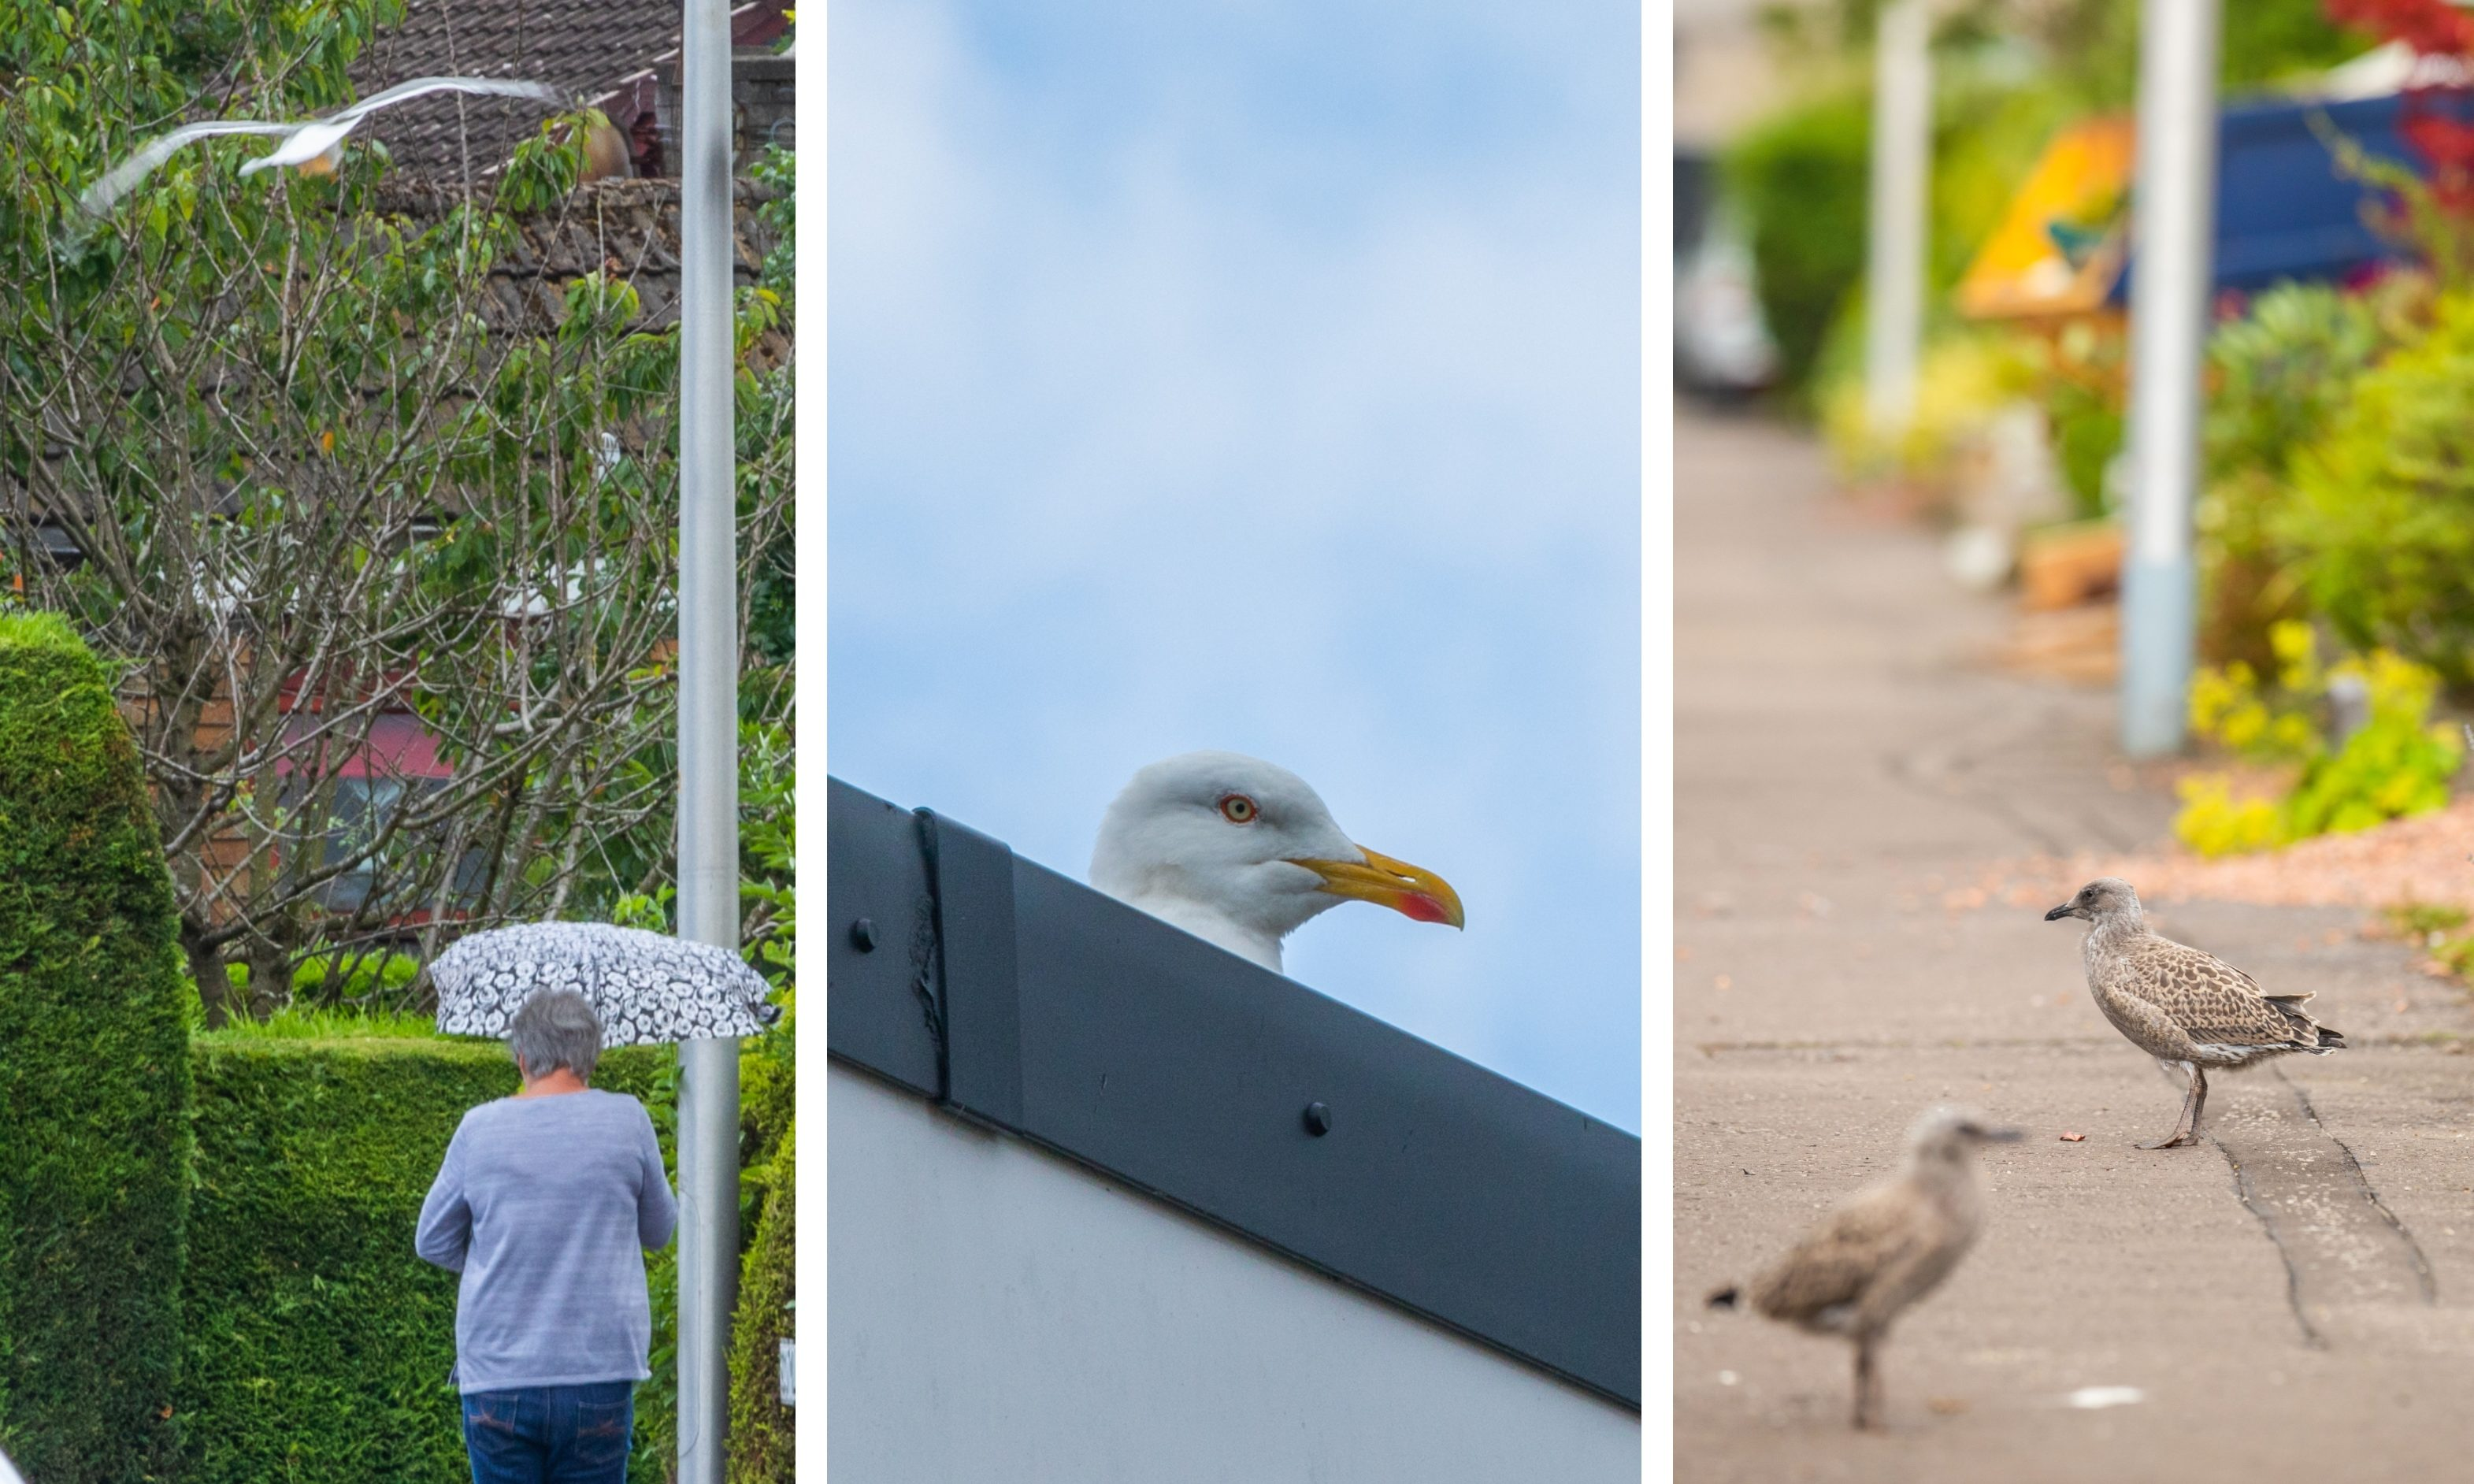 Gulls have been attacking residents on an Inverkeithing street.